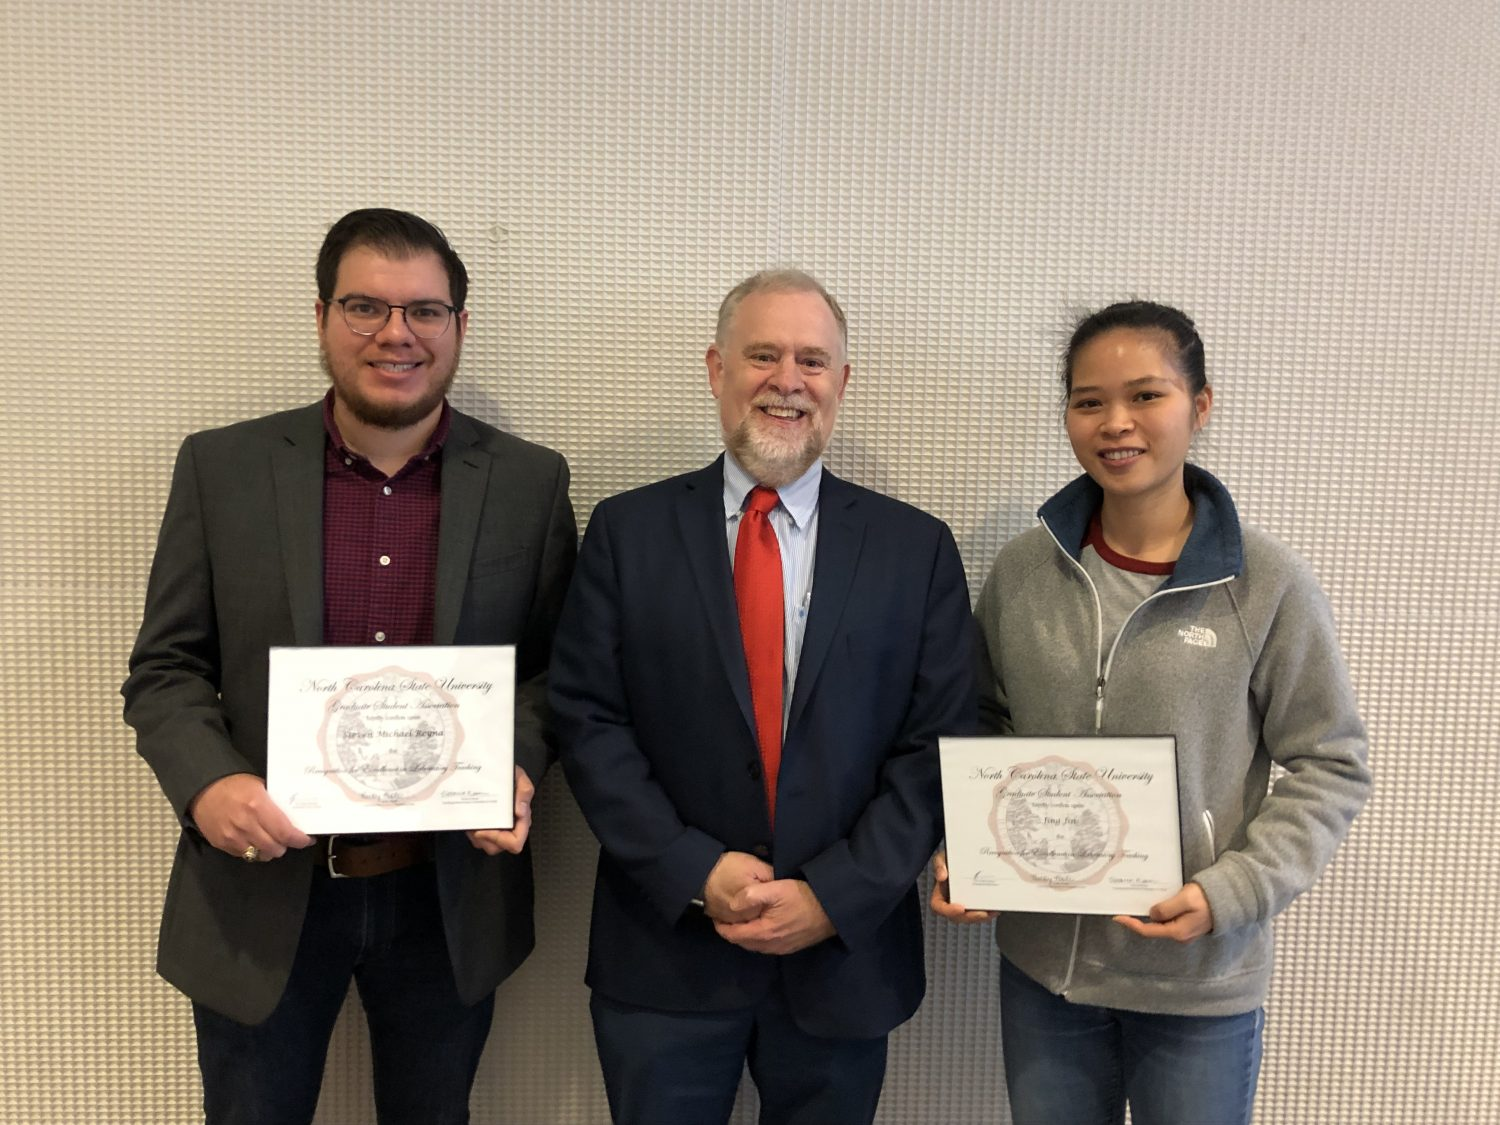 Steven Reyna and Jing Jin with the Dean of the Graduate School, Dr. Peter Harries